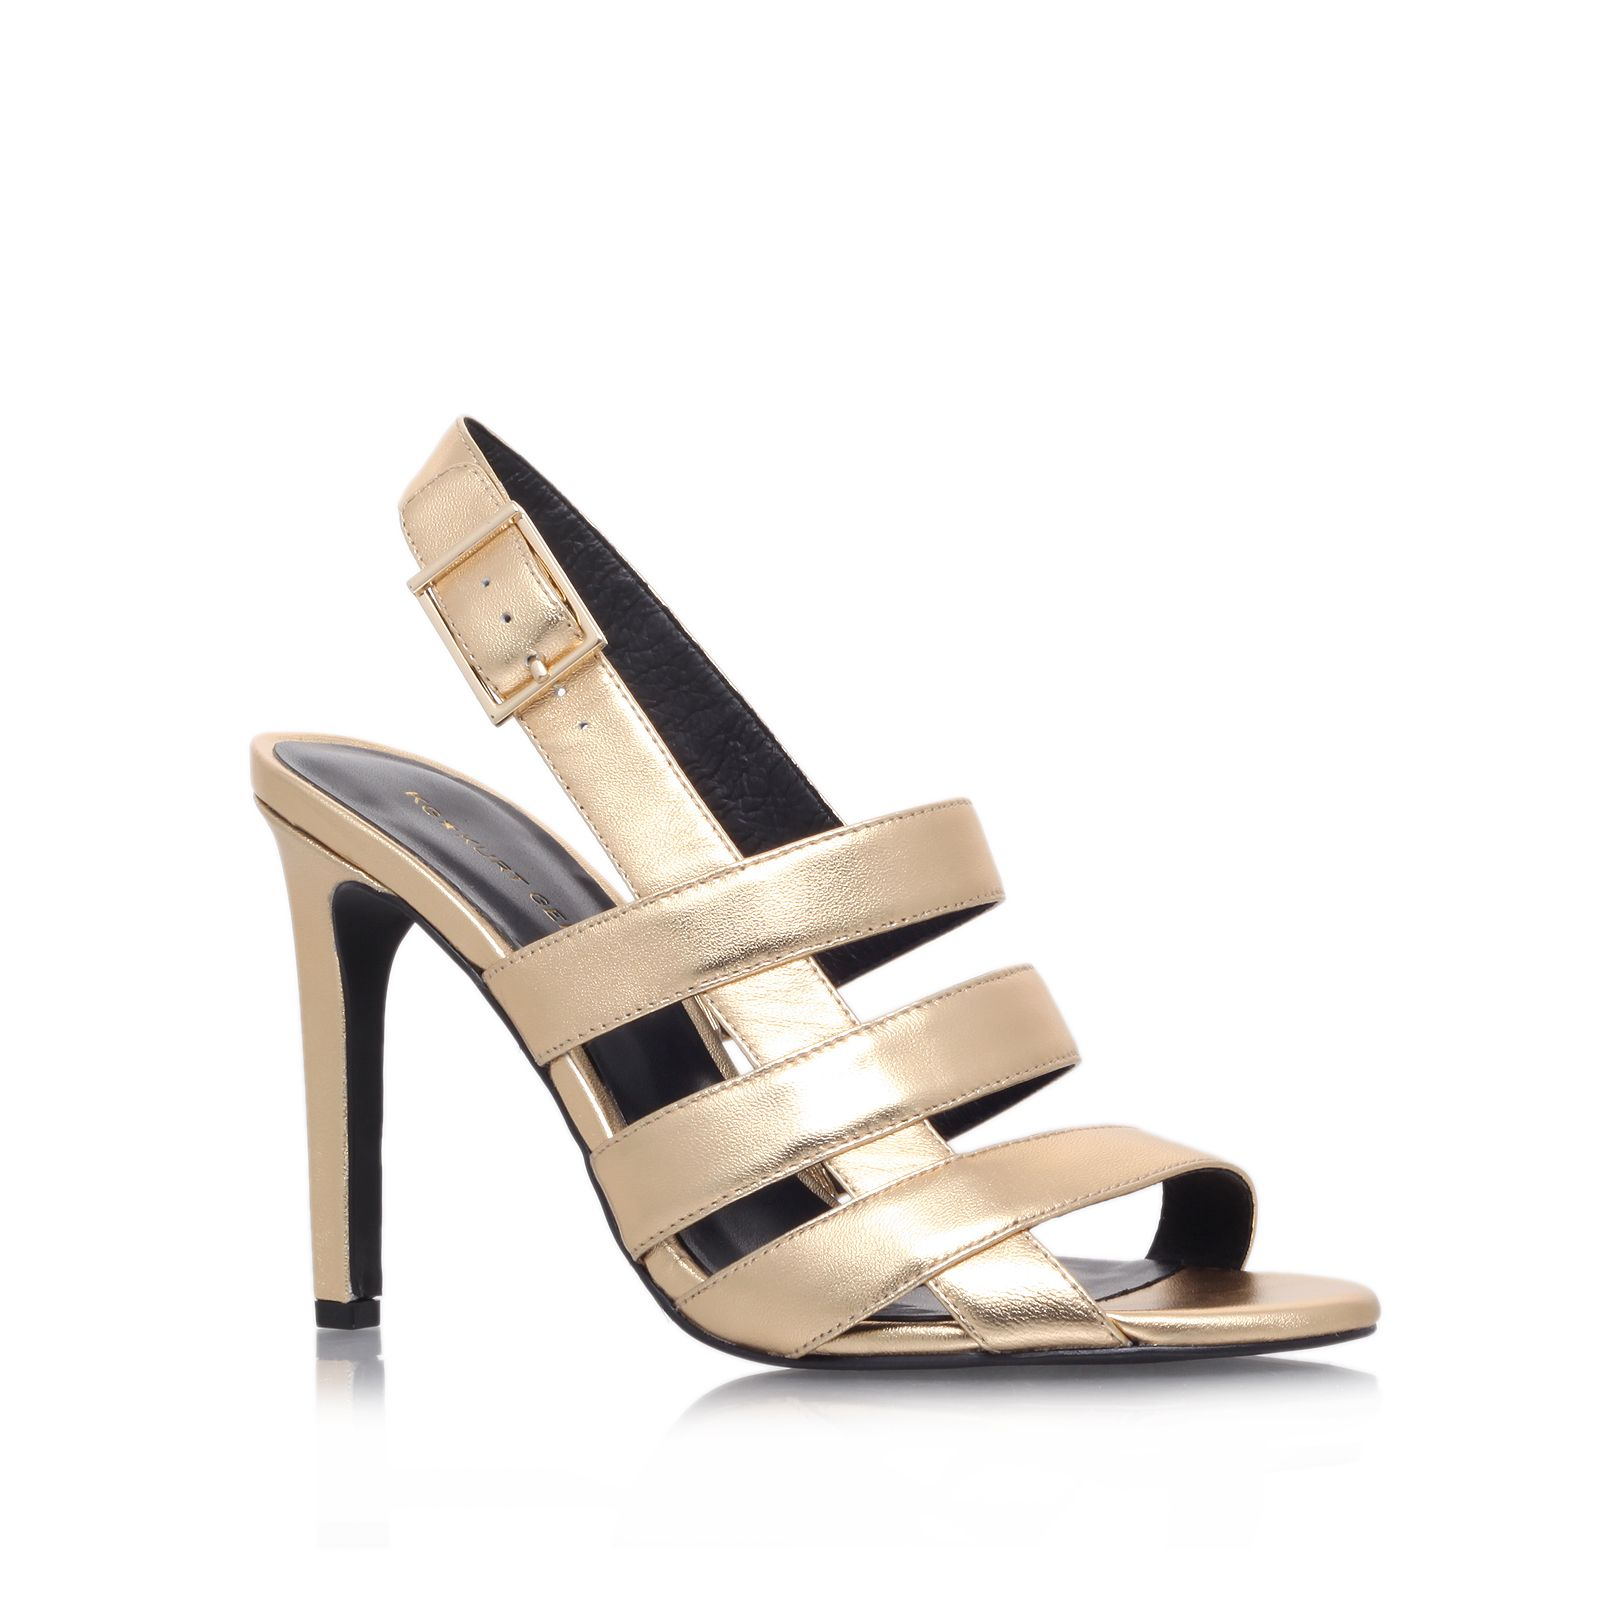 Kimberly high heel sandals